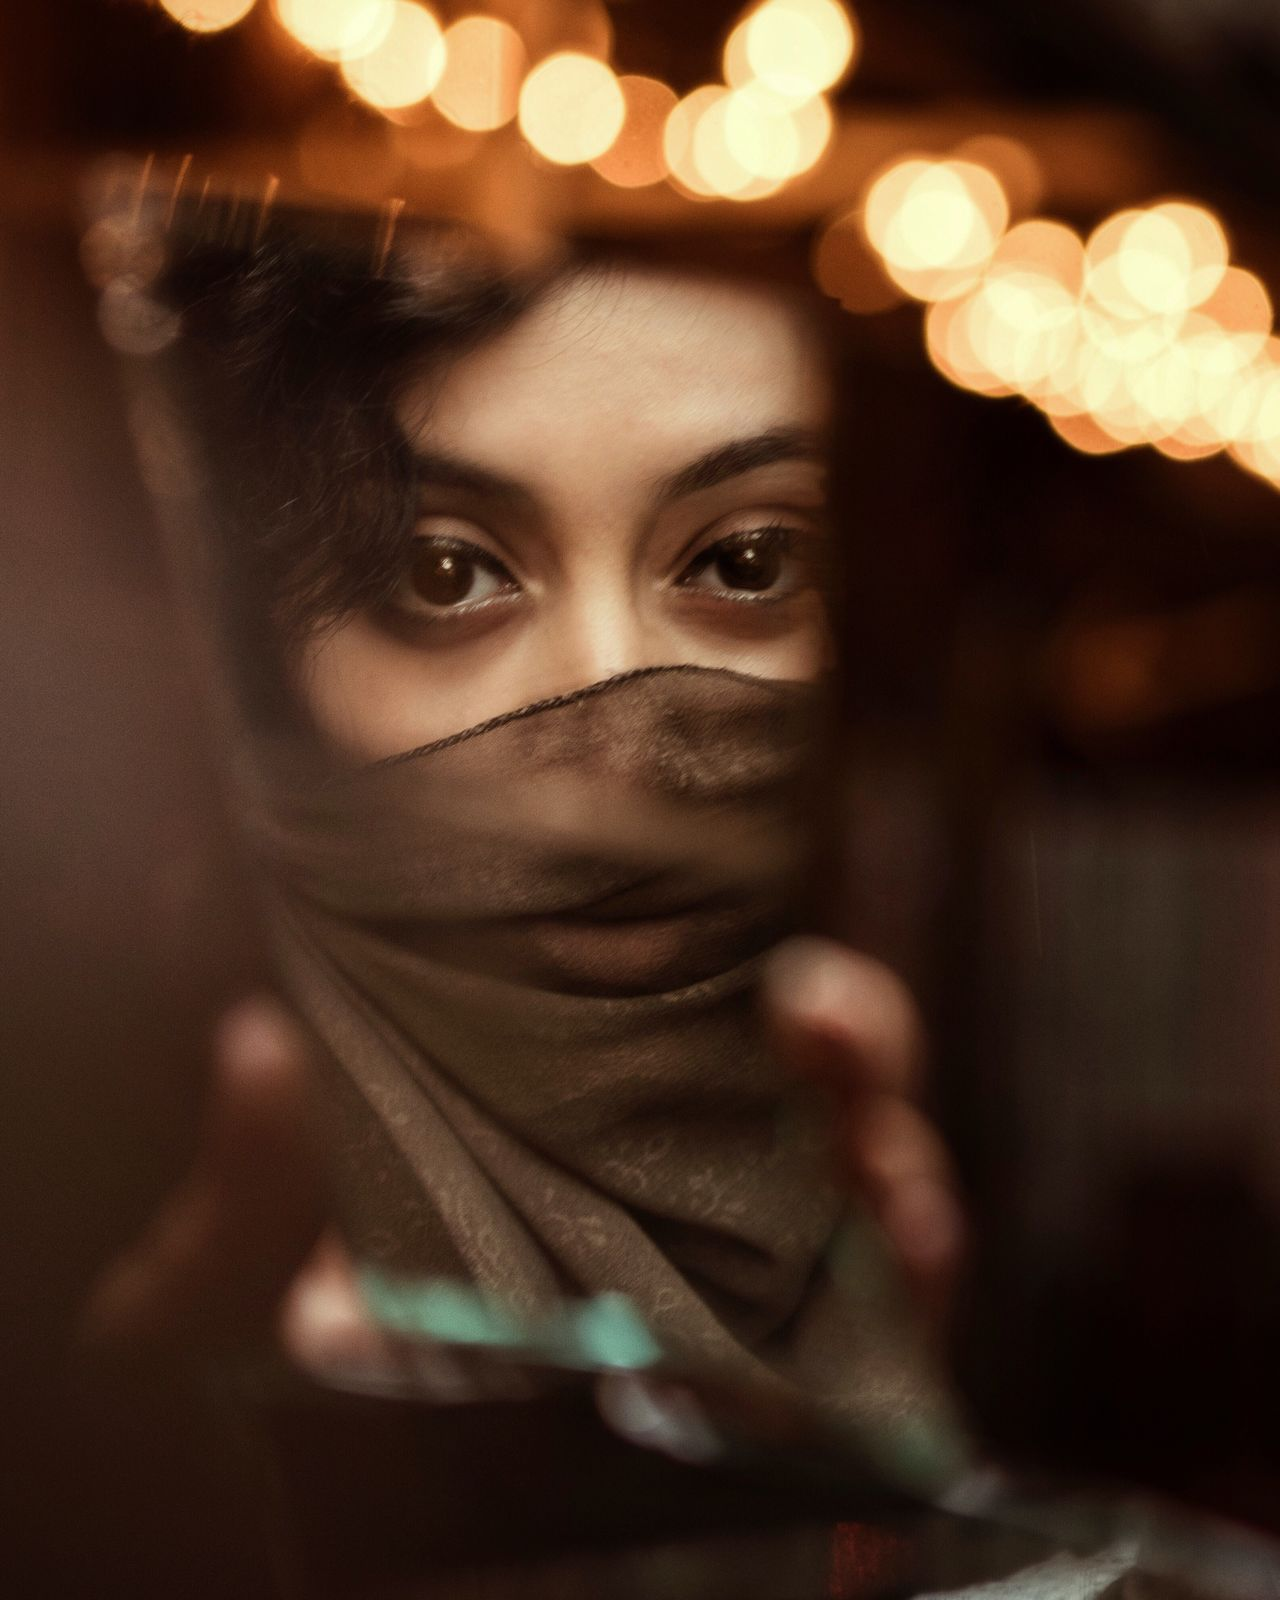 Re-edit Illuminated Bokeh Photography Women Who Inspire You EyeEm Best Shots Mirror Reflection Abstract Lights Eyes Soul Portrait The Portraitist - 2017 EyeEm Awards